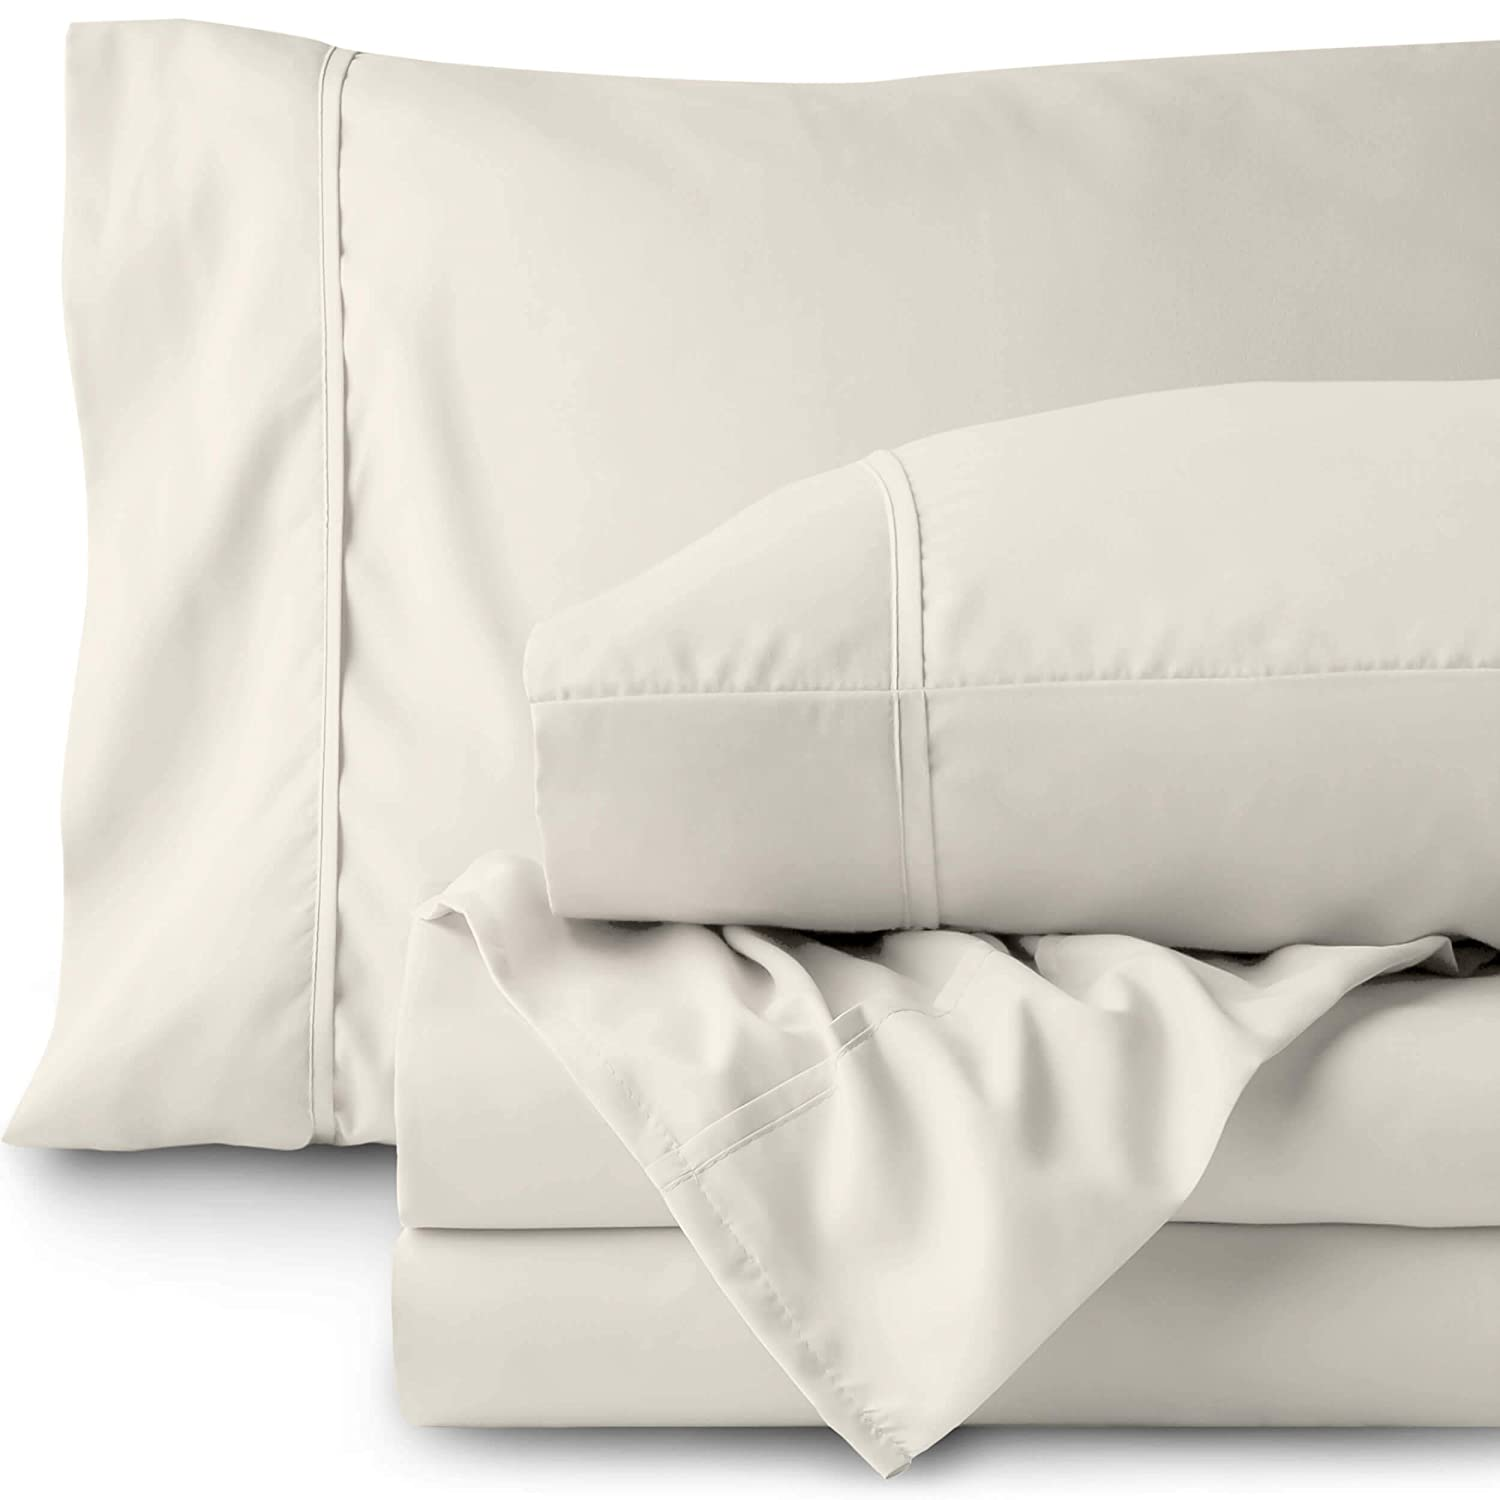 Bare Home Queen Sheet Set - 1800 Ultra-Soft Microfiber Bed Sheets - Double Brushed Breathable Bedding - Hypoallergenic – Wrinkle Resistant - Deep Pocket (Queen, Ivory)